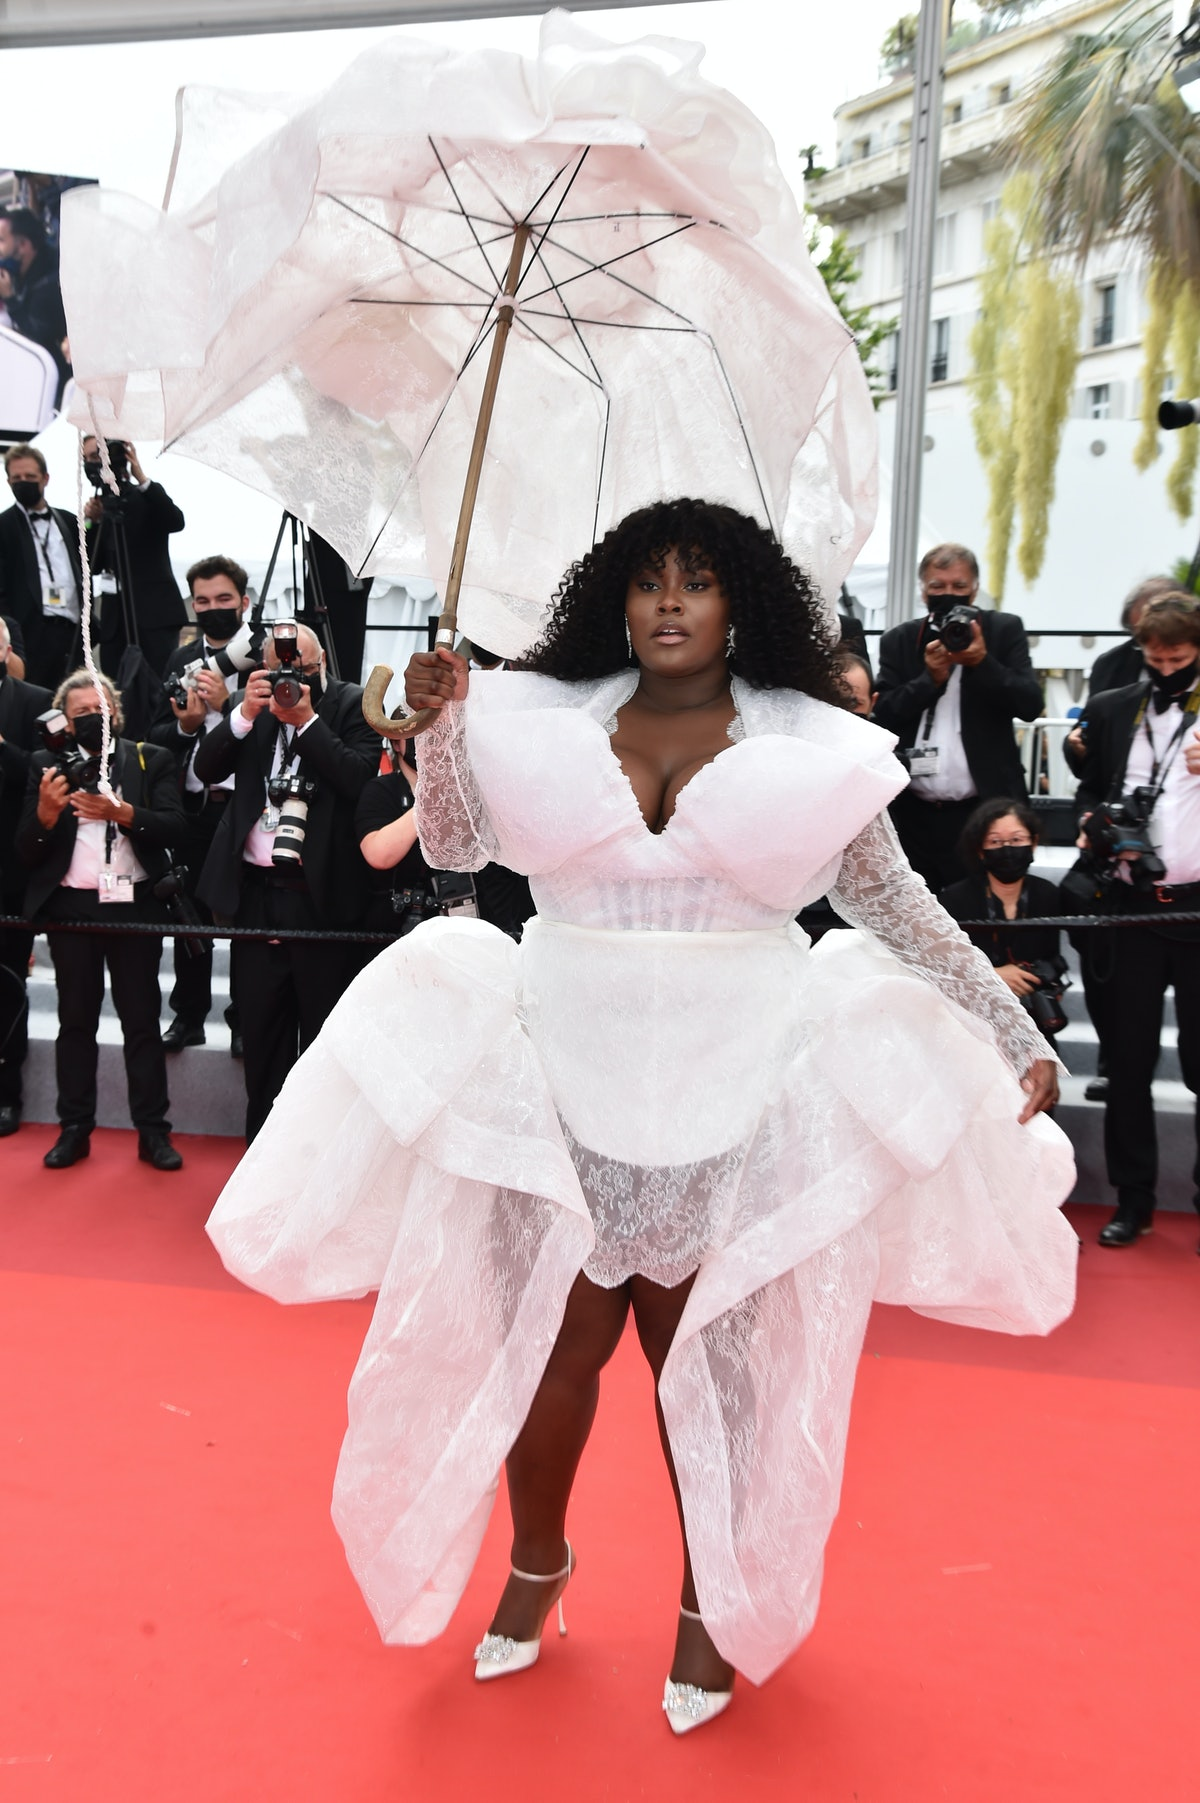 """CANNES, FRANCE - JULY 16: Yseult attends the """"Les Intranquilles (The Restless)"""" screening during the 74th annual Cannes Film Festival on July 16, 2021 in Cannes, France. (Photo by Dominique Charriau/WireImage)"""